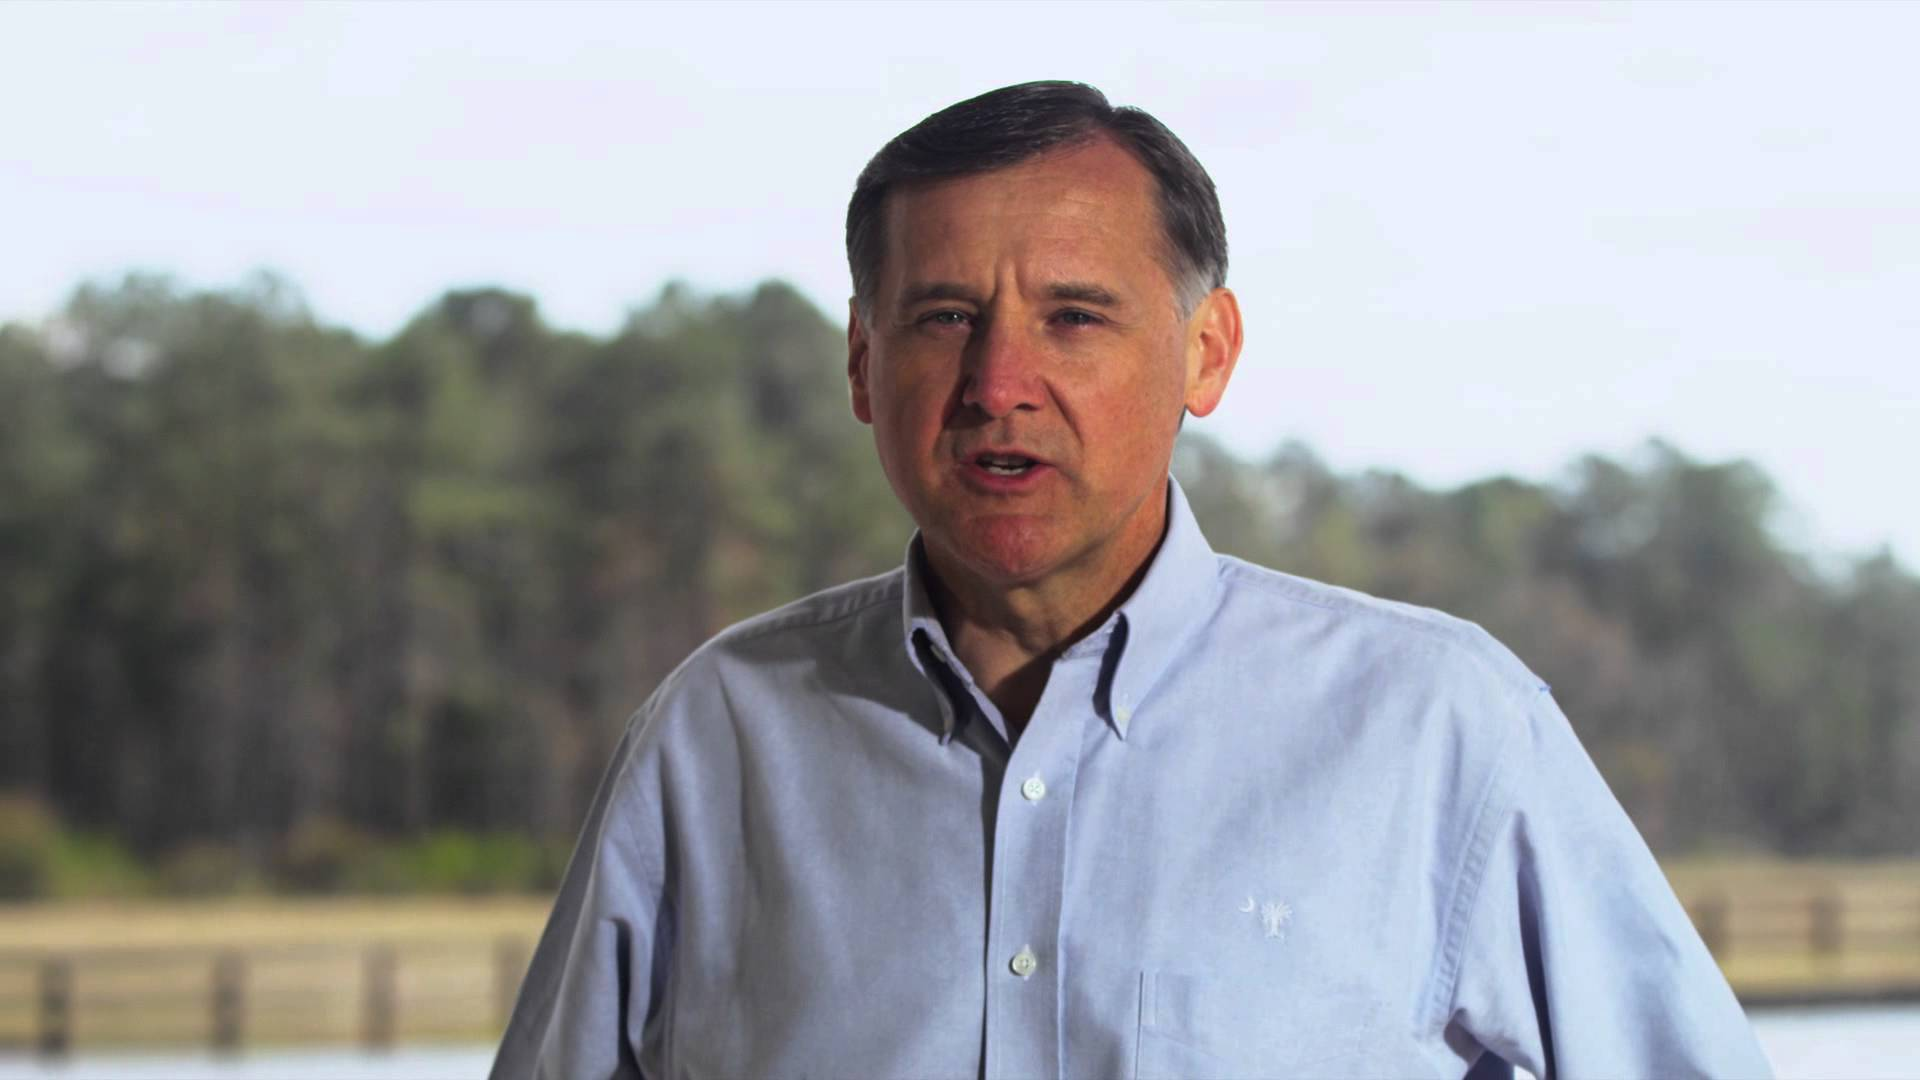 Disgraced Mark Sanford for South Carolina?  No.  Curtis Bostic For Congress and Weekend Links!